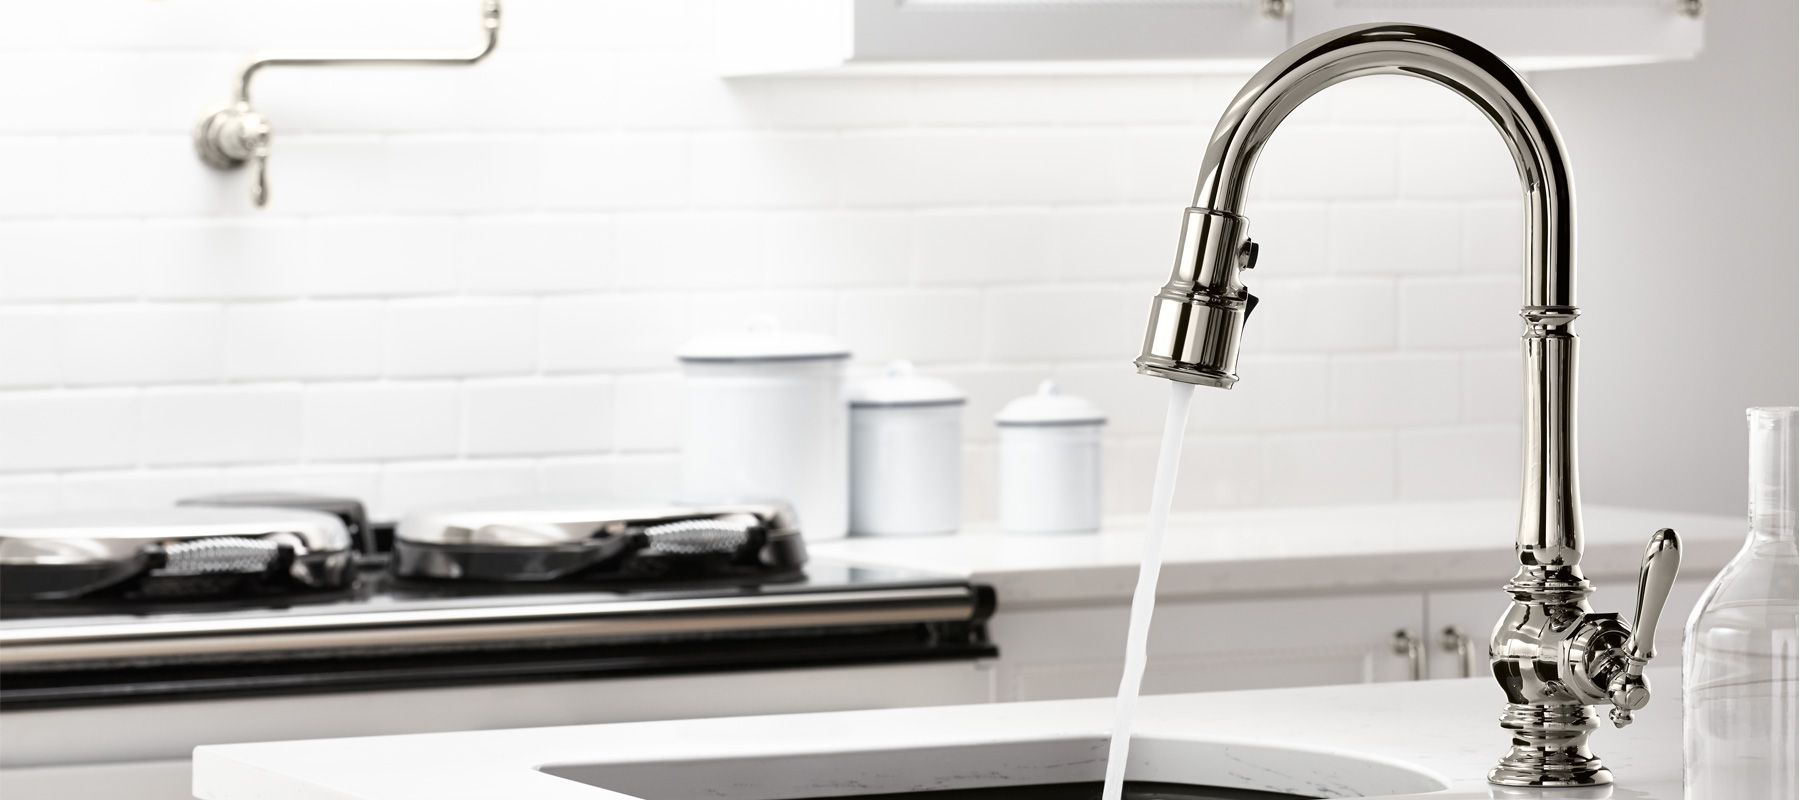 Kohler White Kitchen Faucet : Bar Sink Faucets Kitchen Faucets Kitchen KOHLER